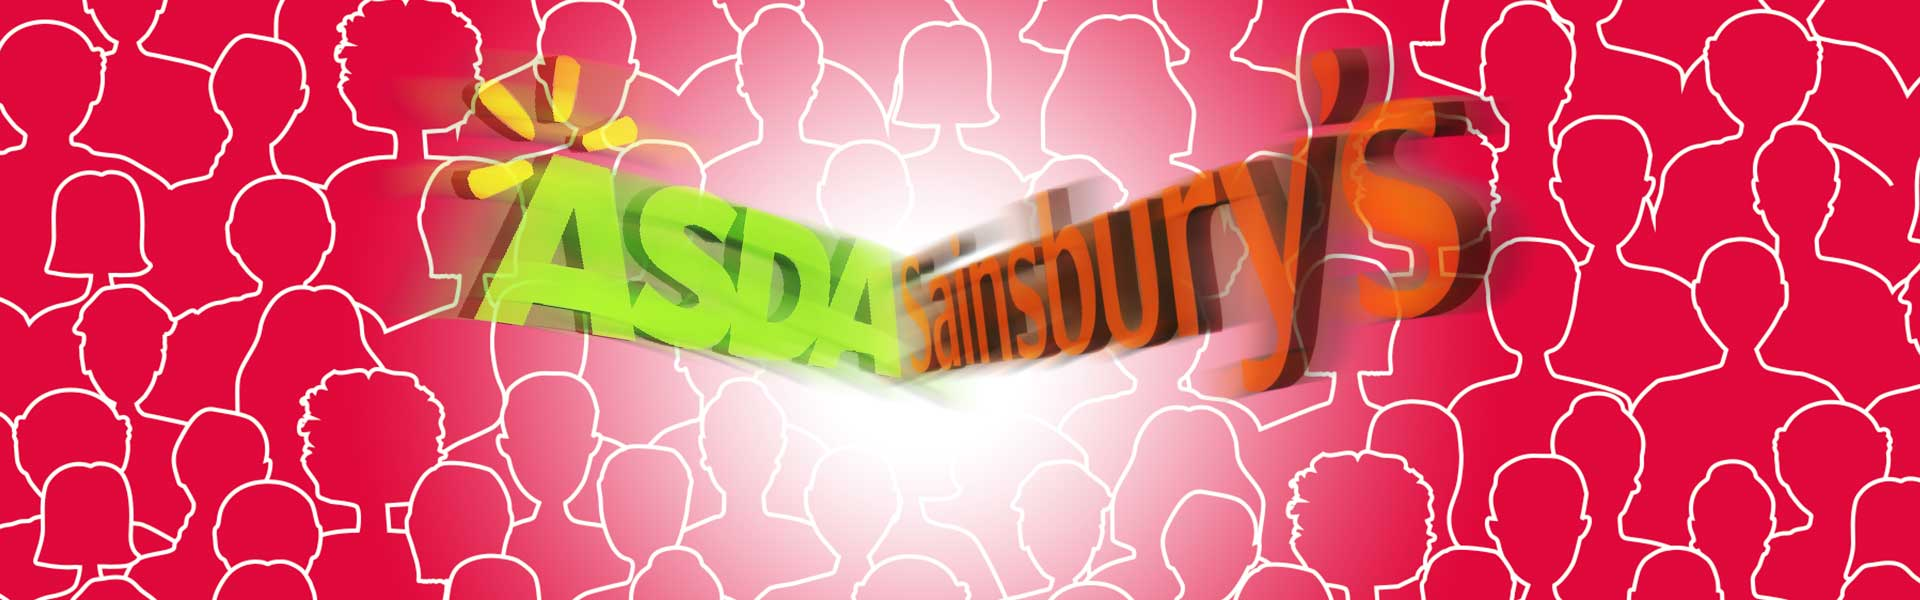 Sainsbury's and Asda Merger Graphic